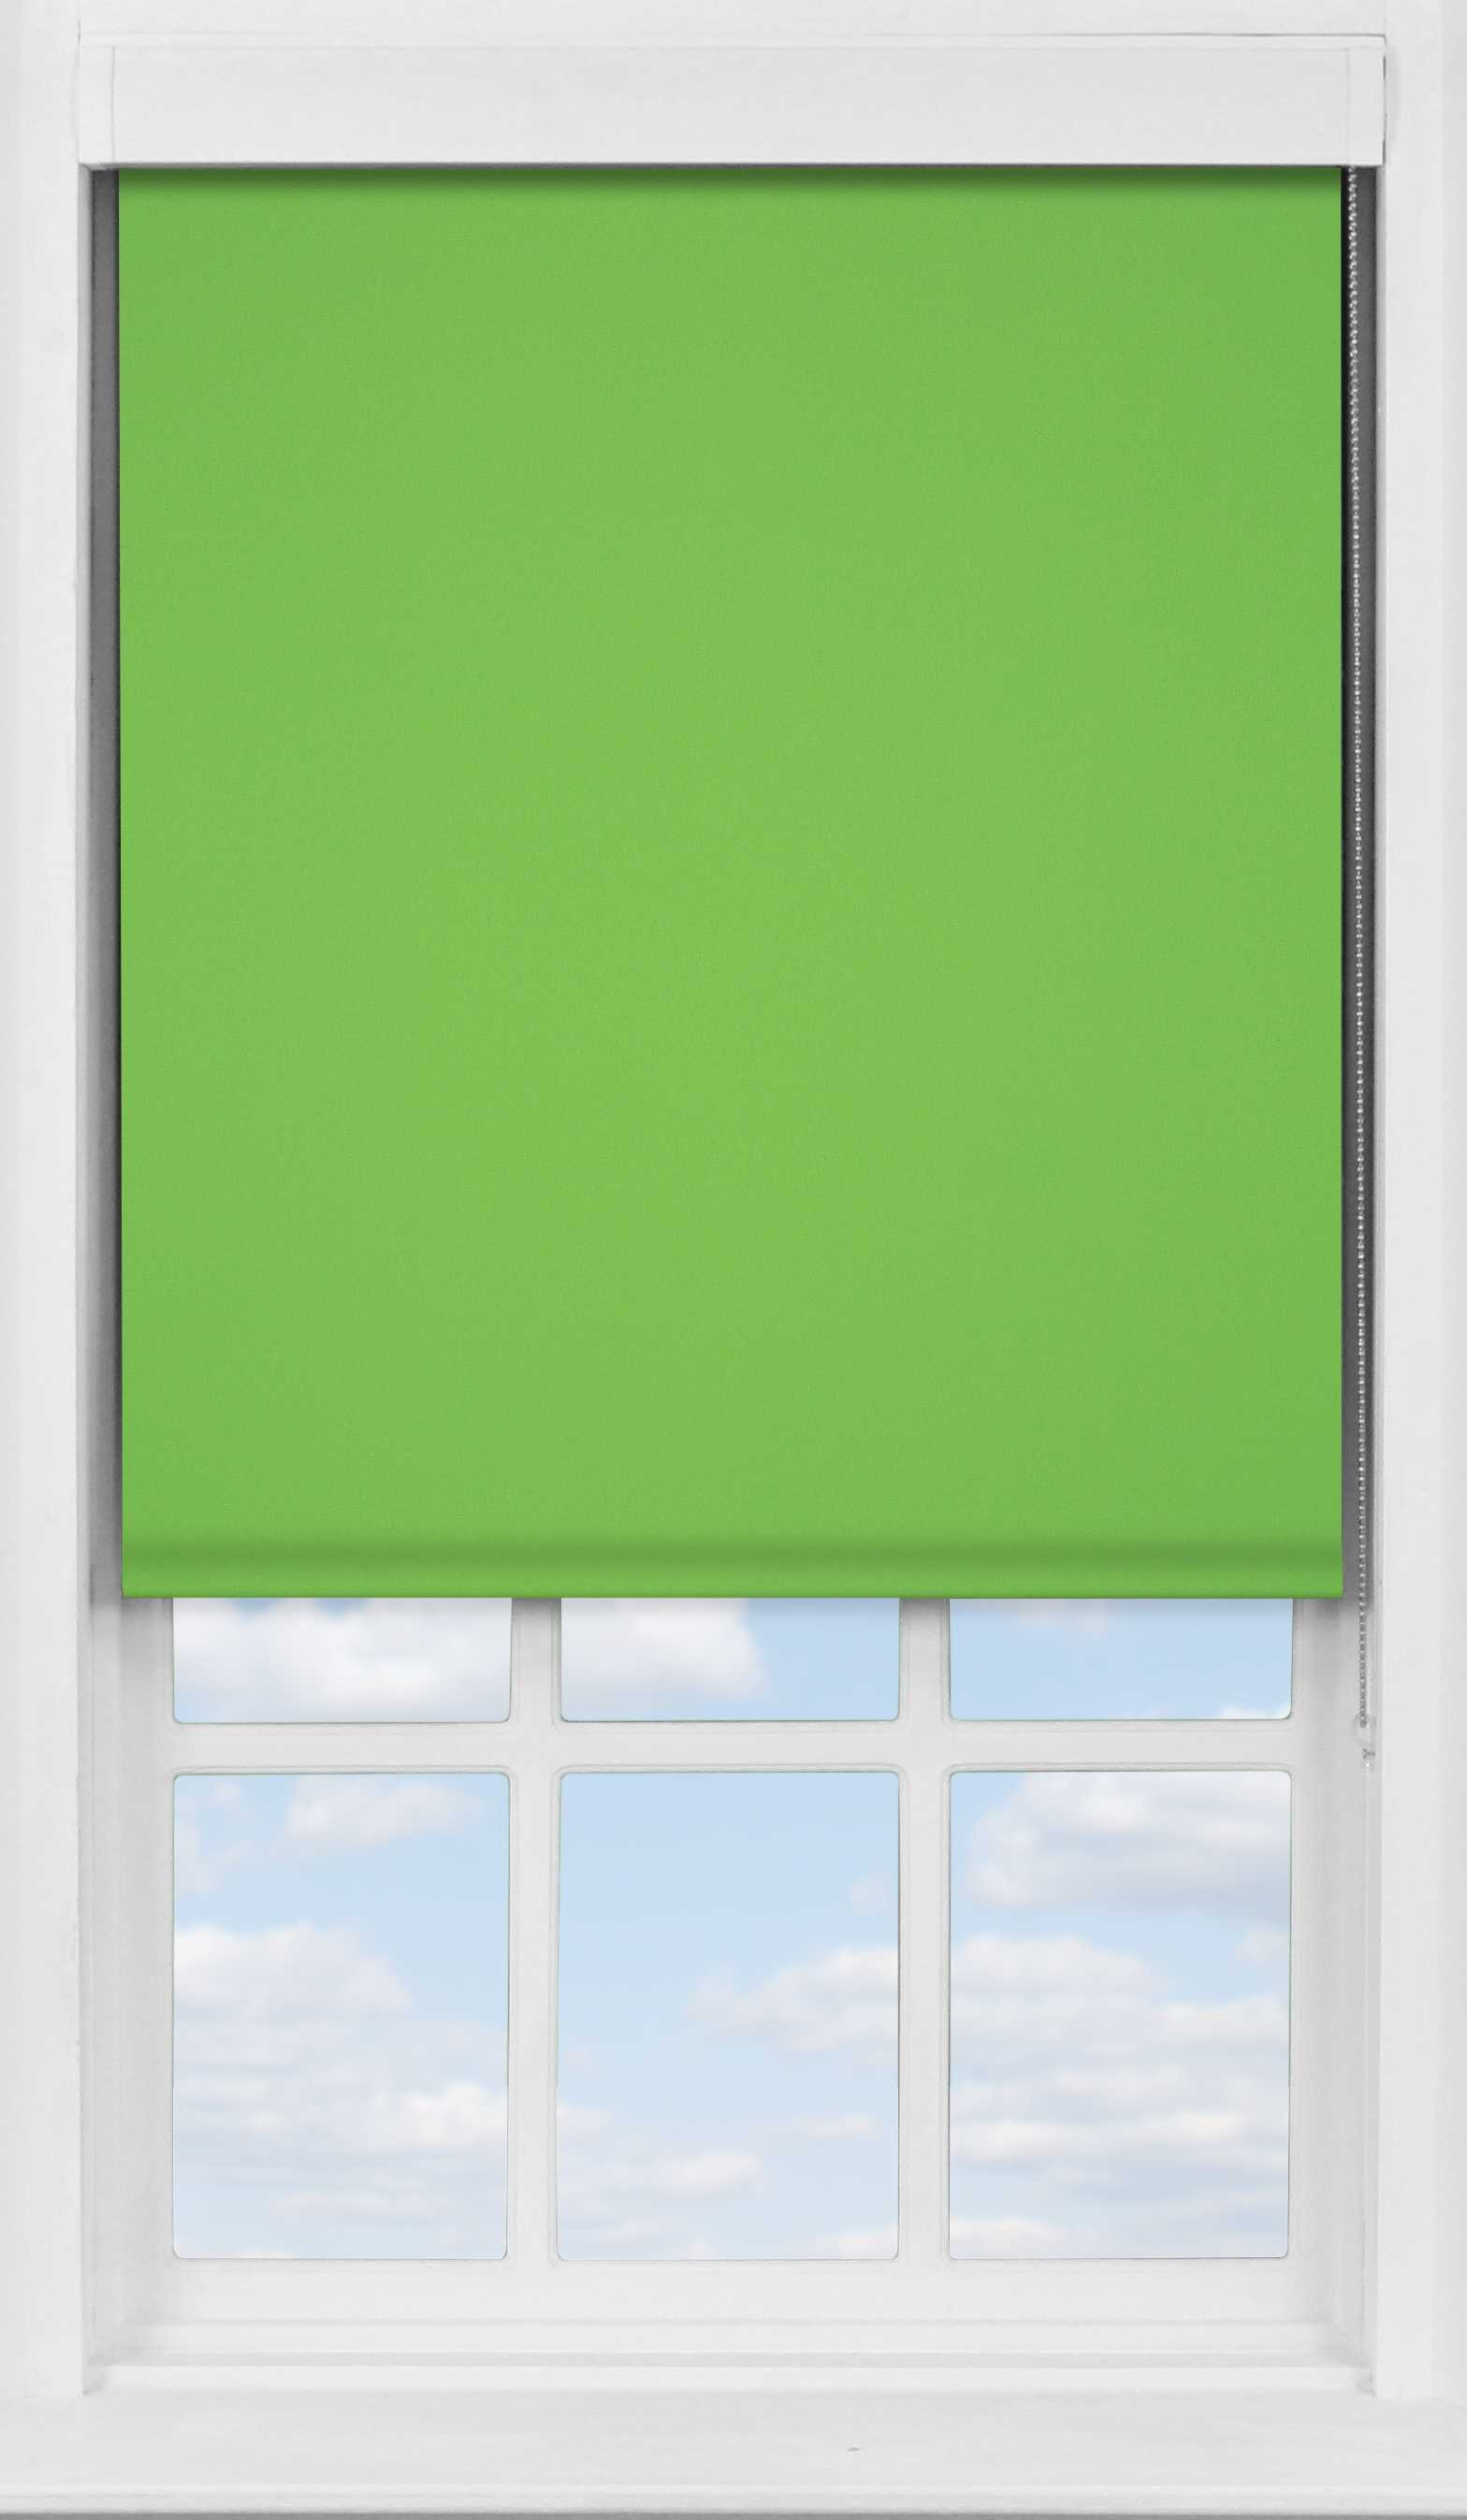 Premium Roller Blind in Grass Green Translucent